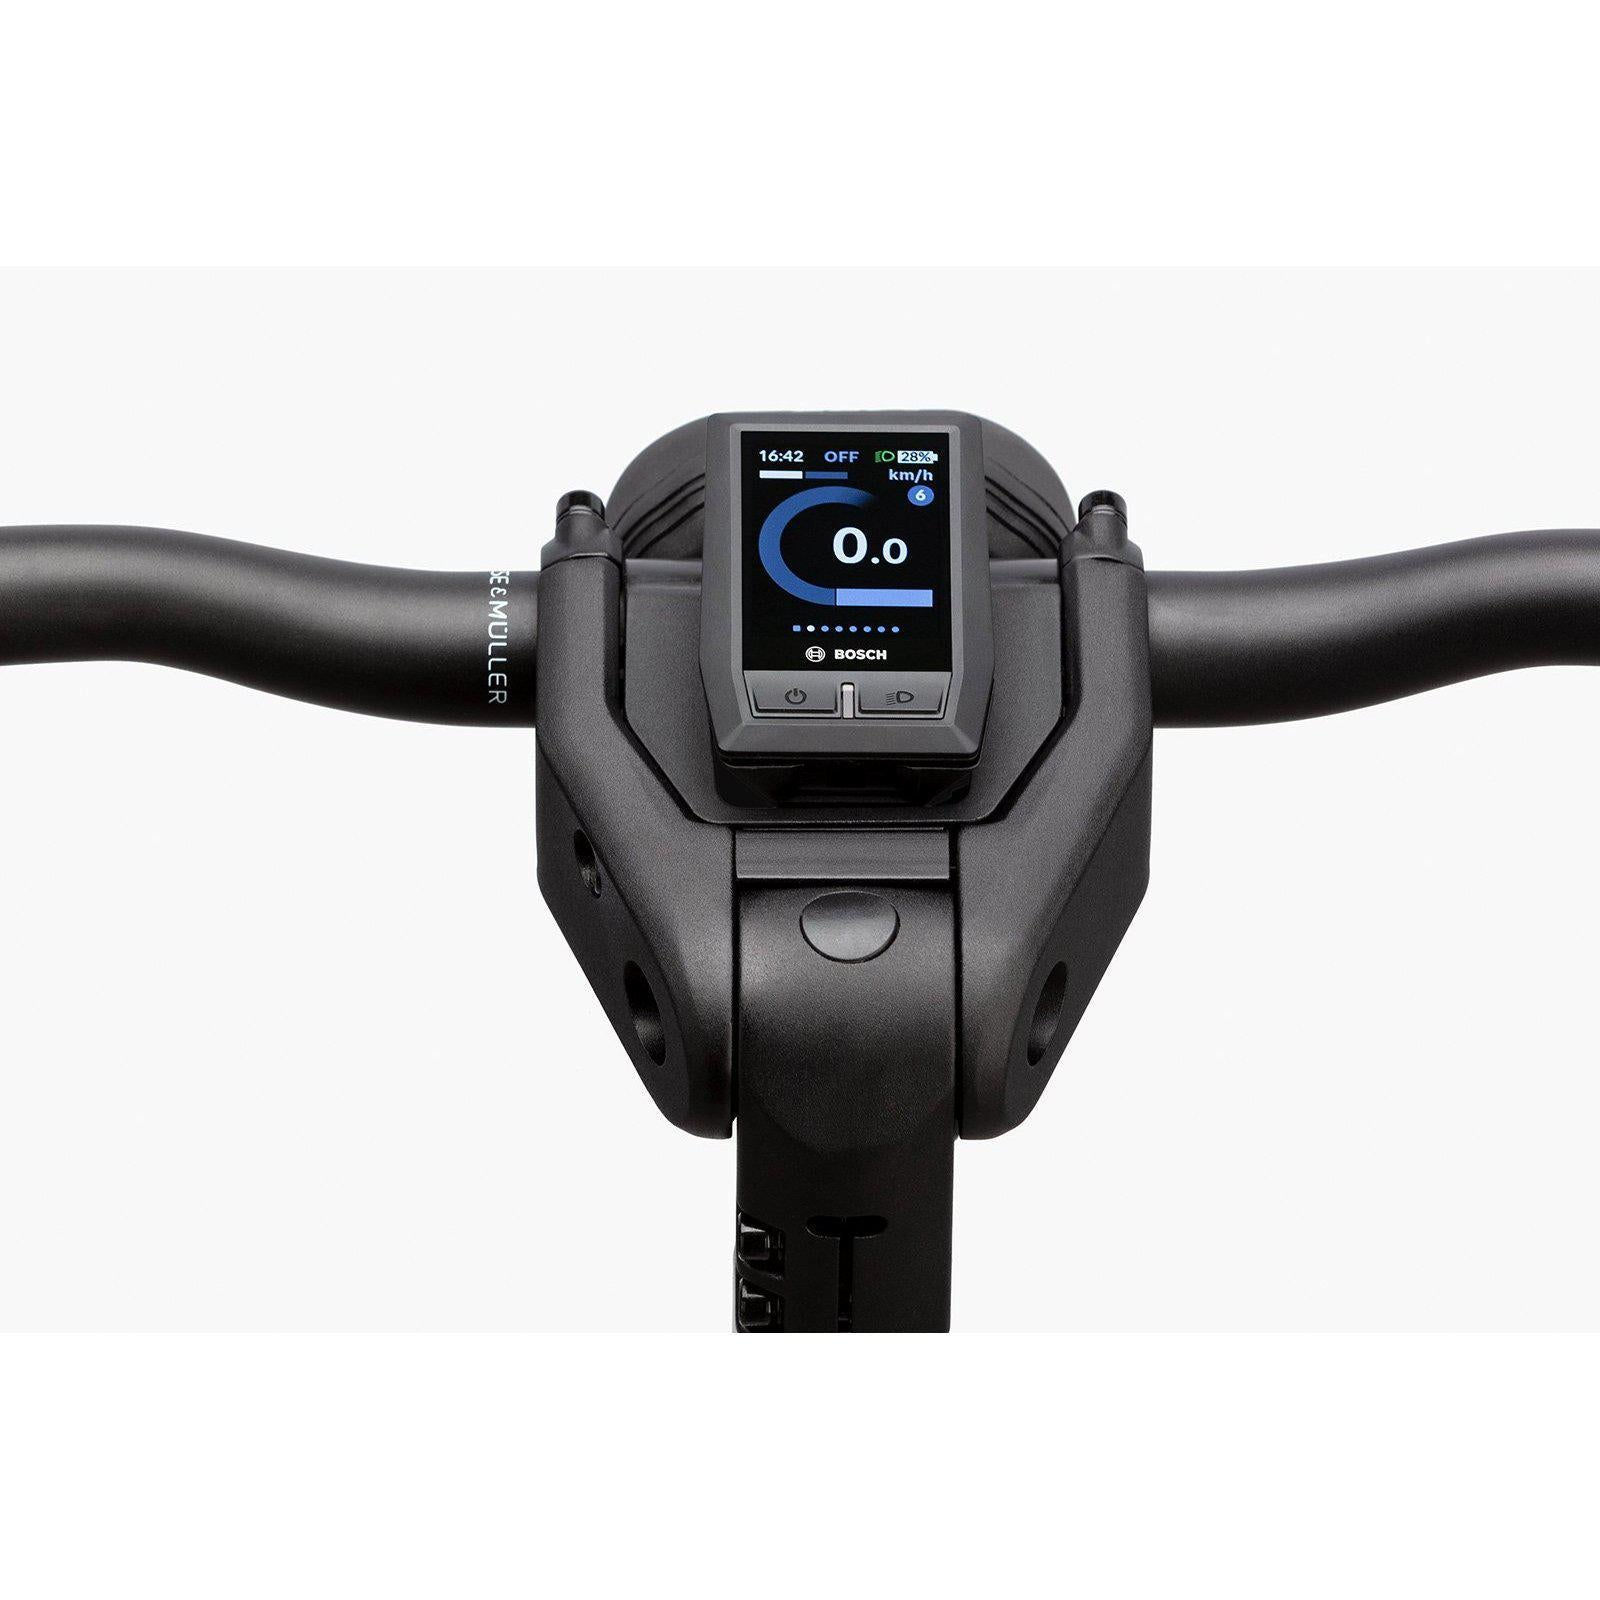 Riese & Müller Electric Bikes Charger3 Mixte GT Vario-Oregon EBikes